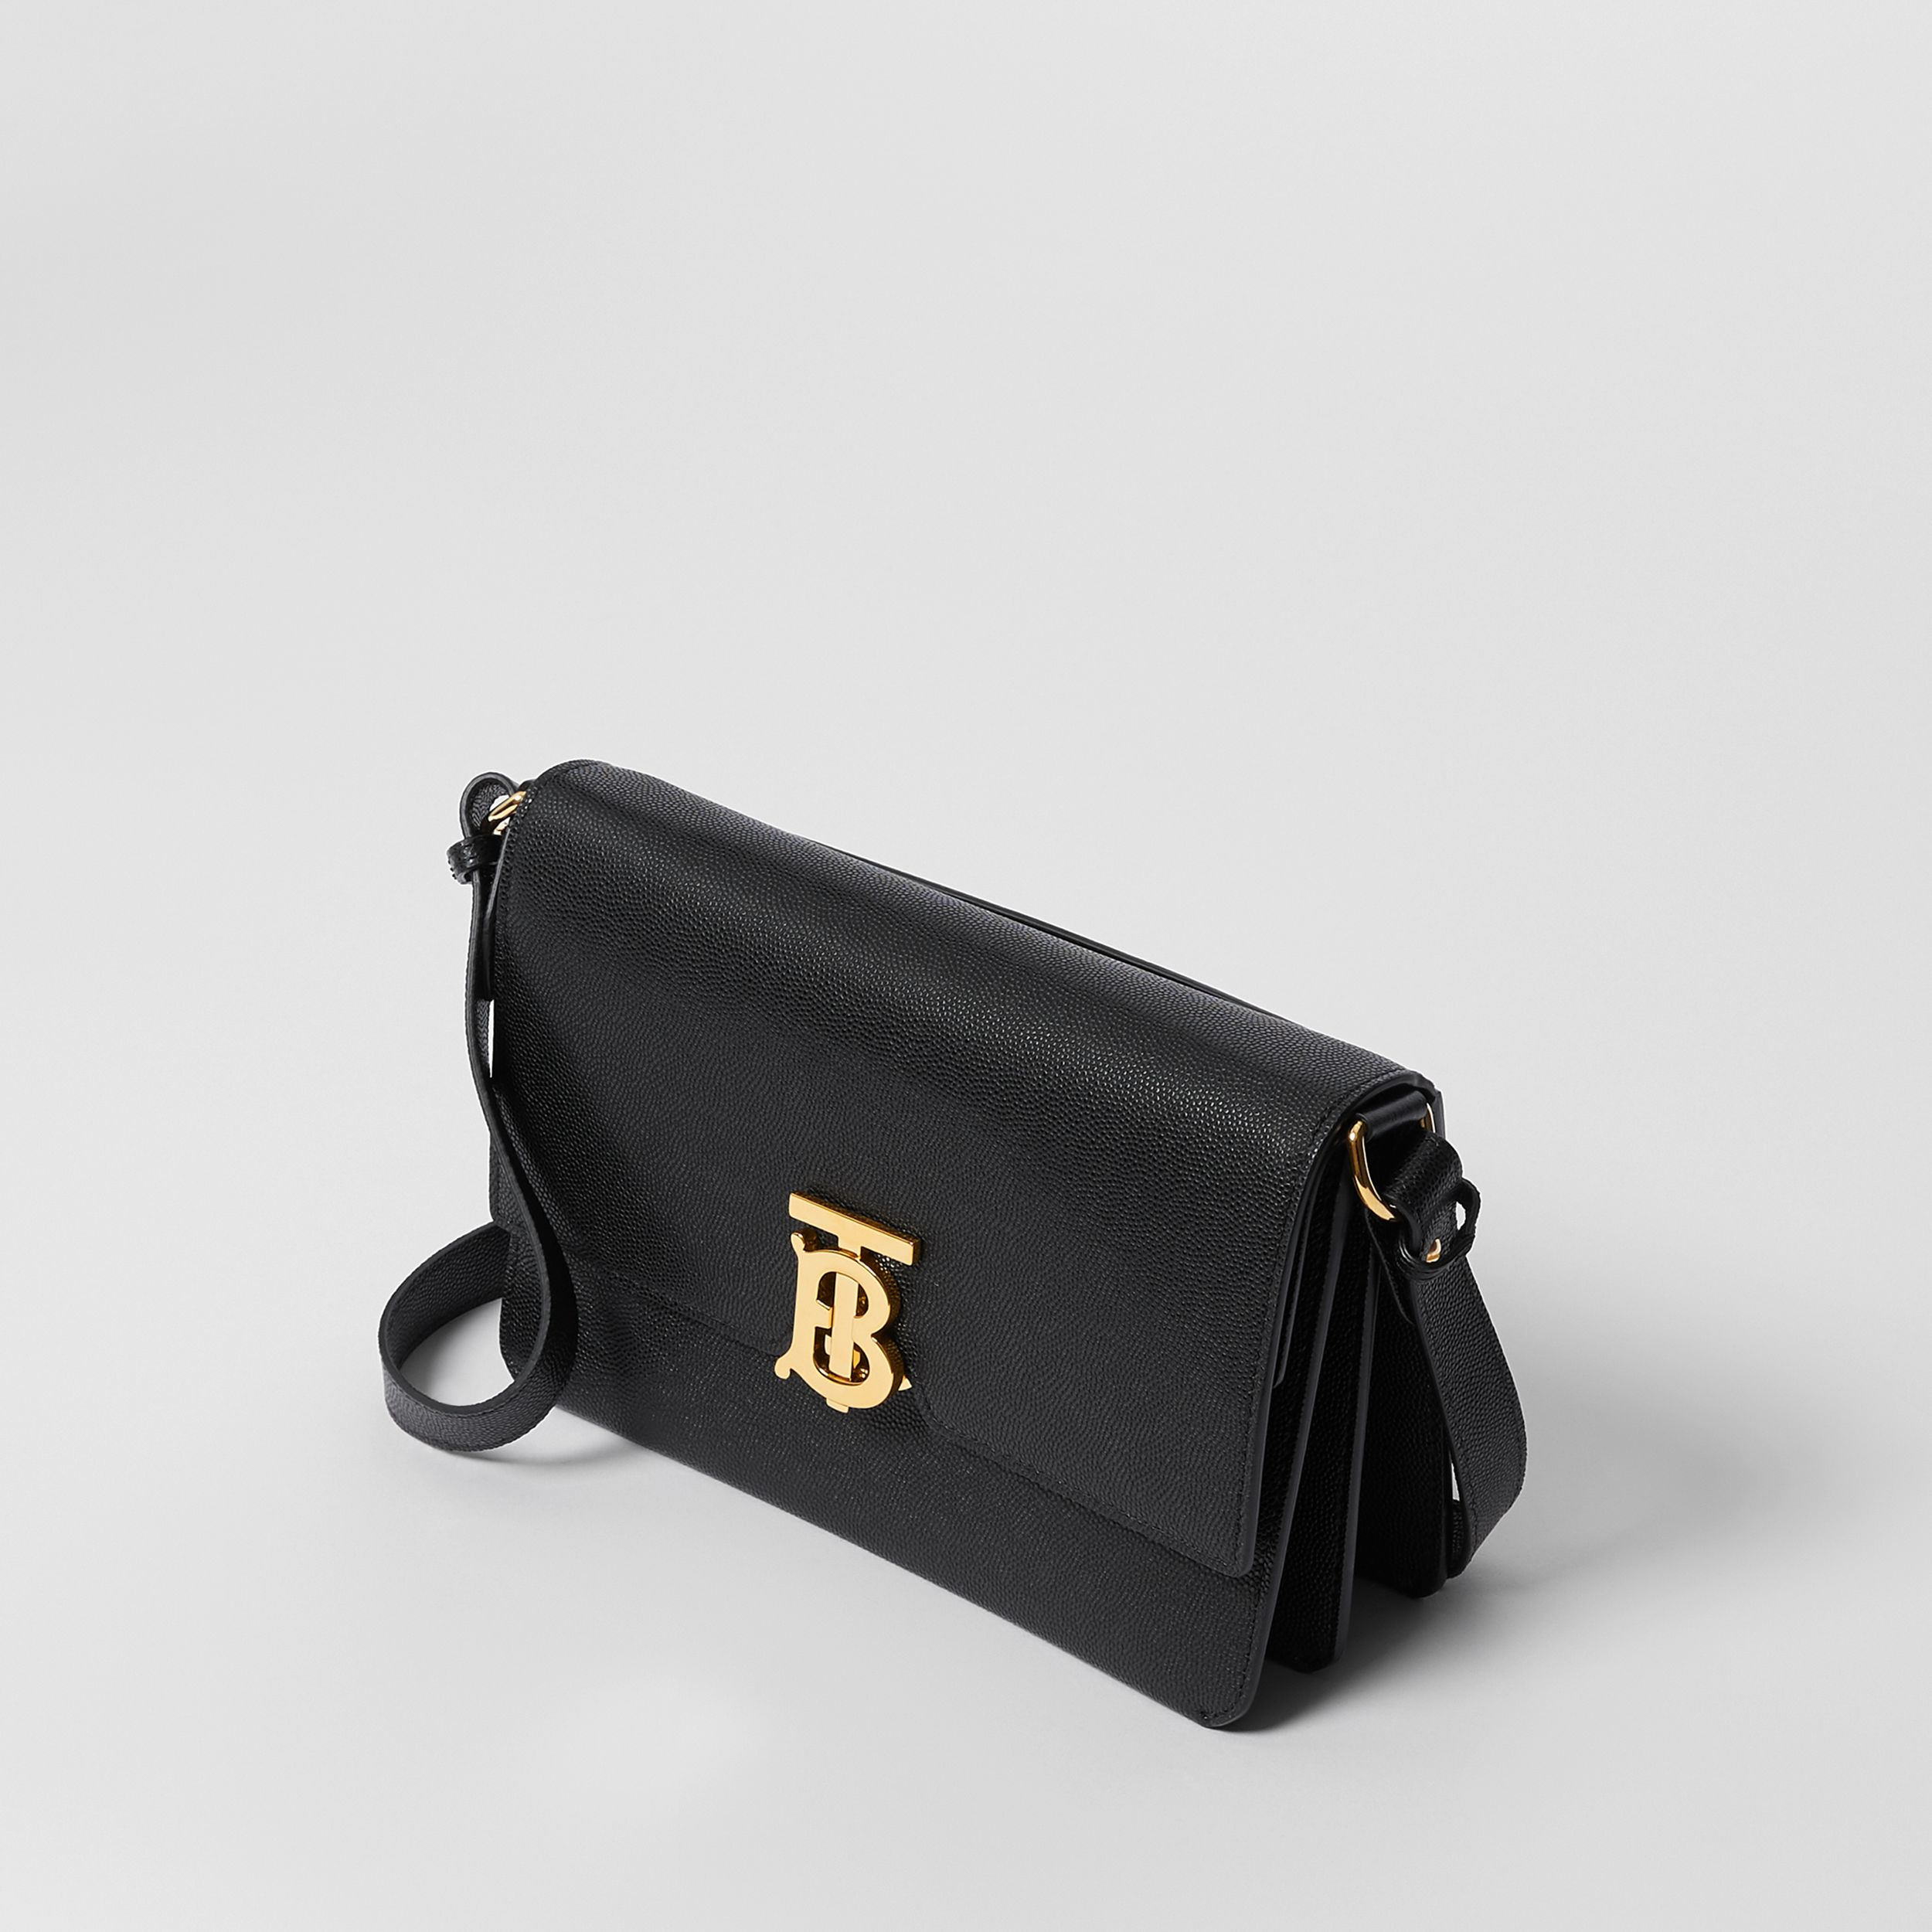 Small Monogram Motif Leather Crossbody Bag in Black - Women | Burberry - 4